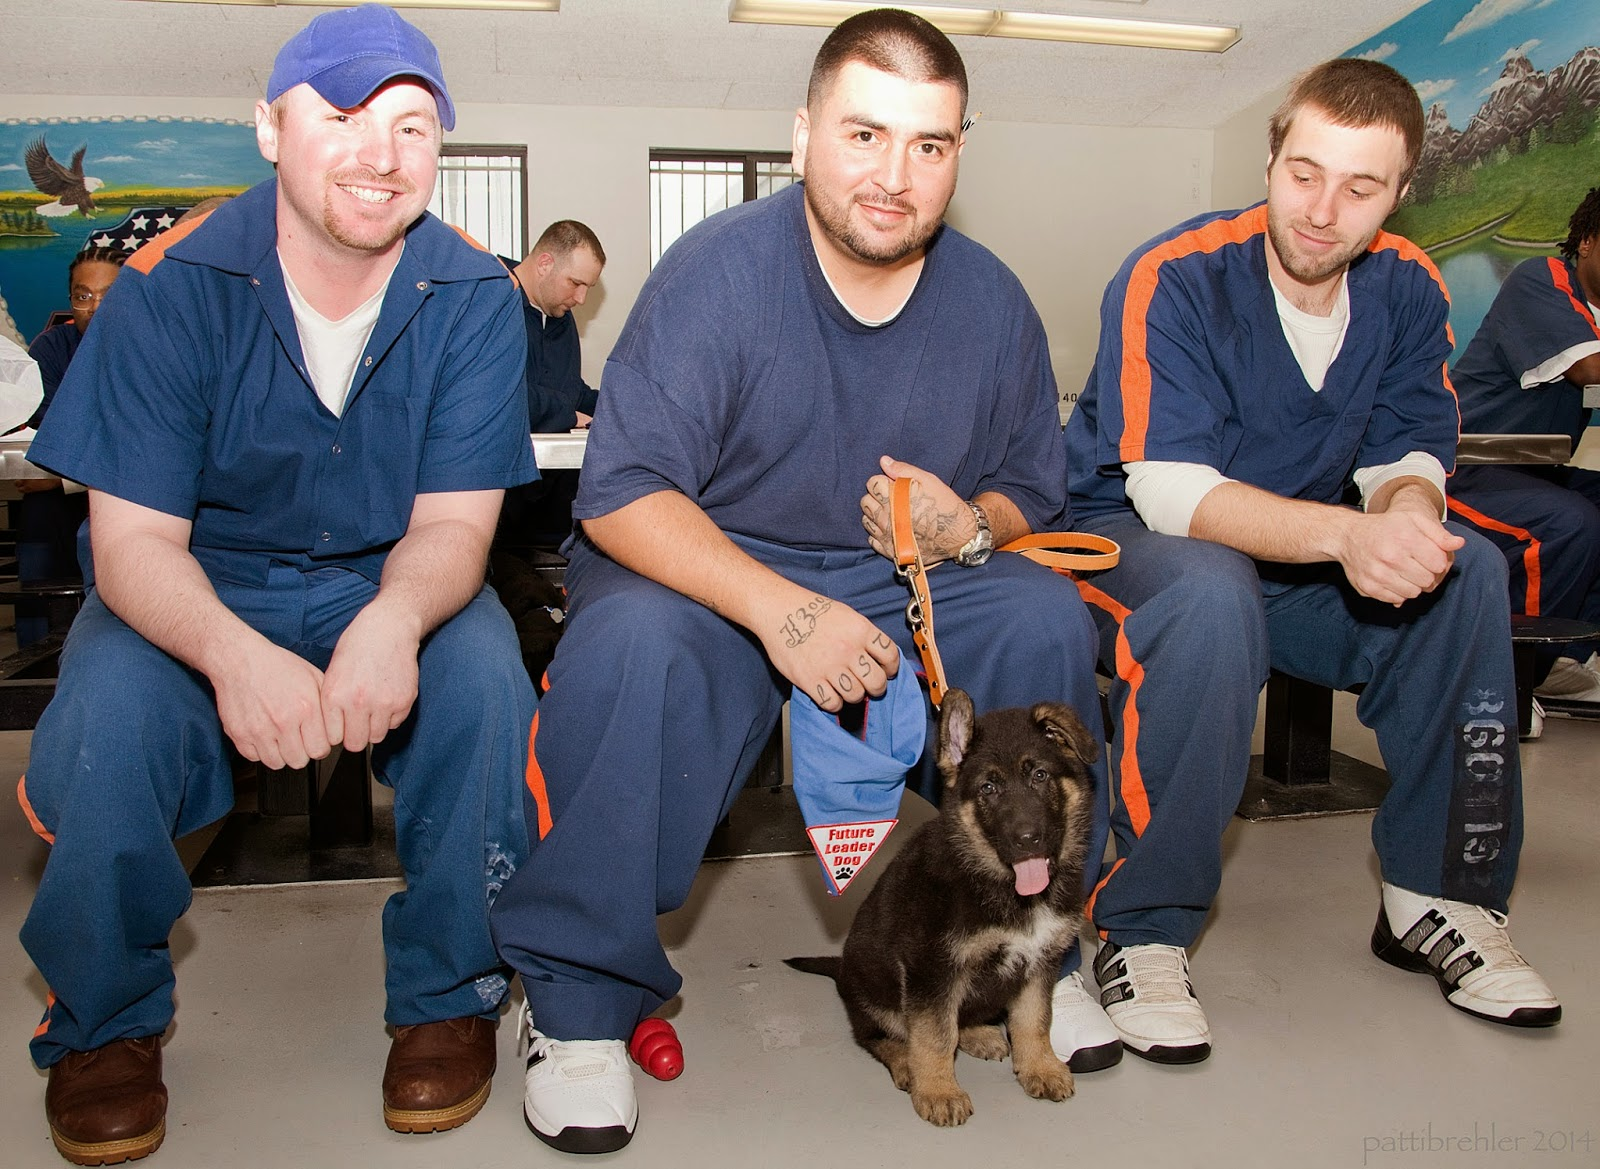 Three men dressed in prison blue uniforms sit side by side on lunchroom stools. The man on the left has his forearms on his knees and is wearing a blue baseball hat, he is smilling at the camera. The man in the middle is holding the leash of a small german shephard puppy who is sitting between his feet on the floor. The man is holding the blue Future Leader Dog blue bandana in is right hand hanging down next to the puppy. This man is grinning at the camera. The man on the right also has his forearms on his knees and he is looking at the puppy. There are a few men in the background.